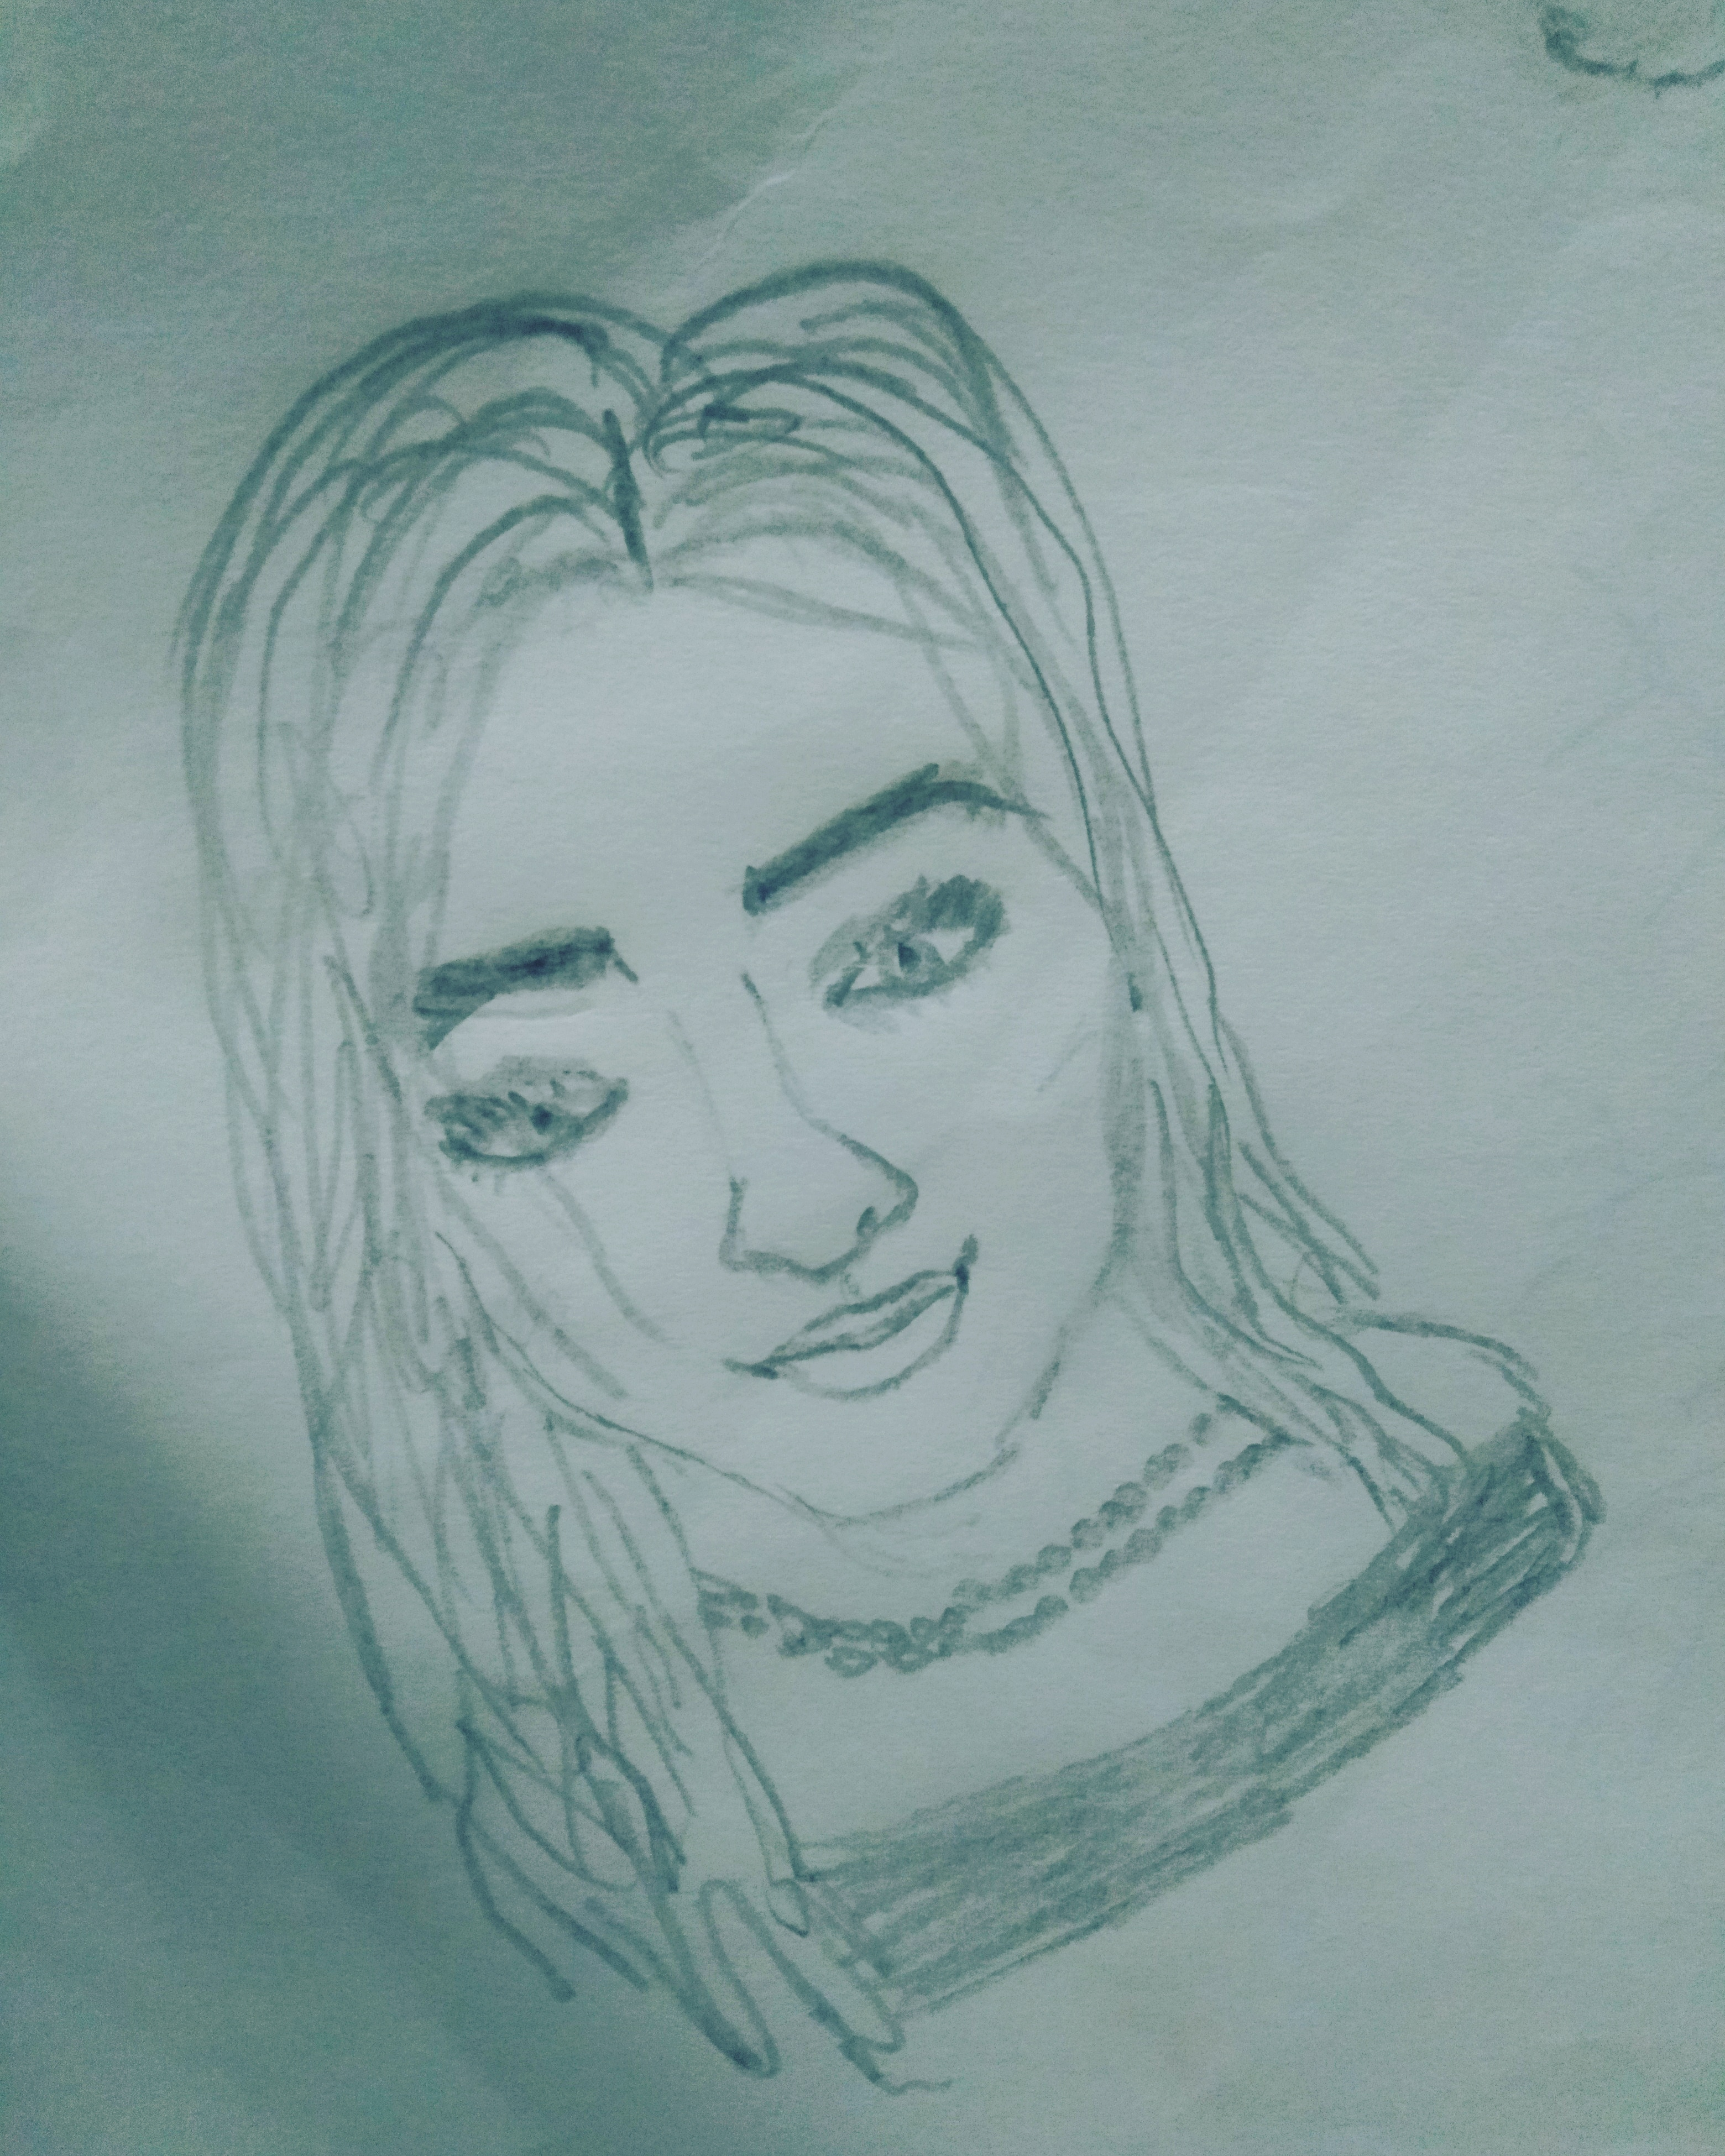 I will make a sketch of you or any other person you want.